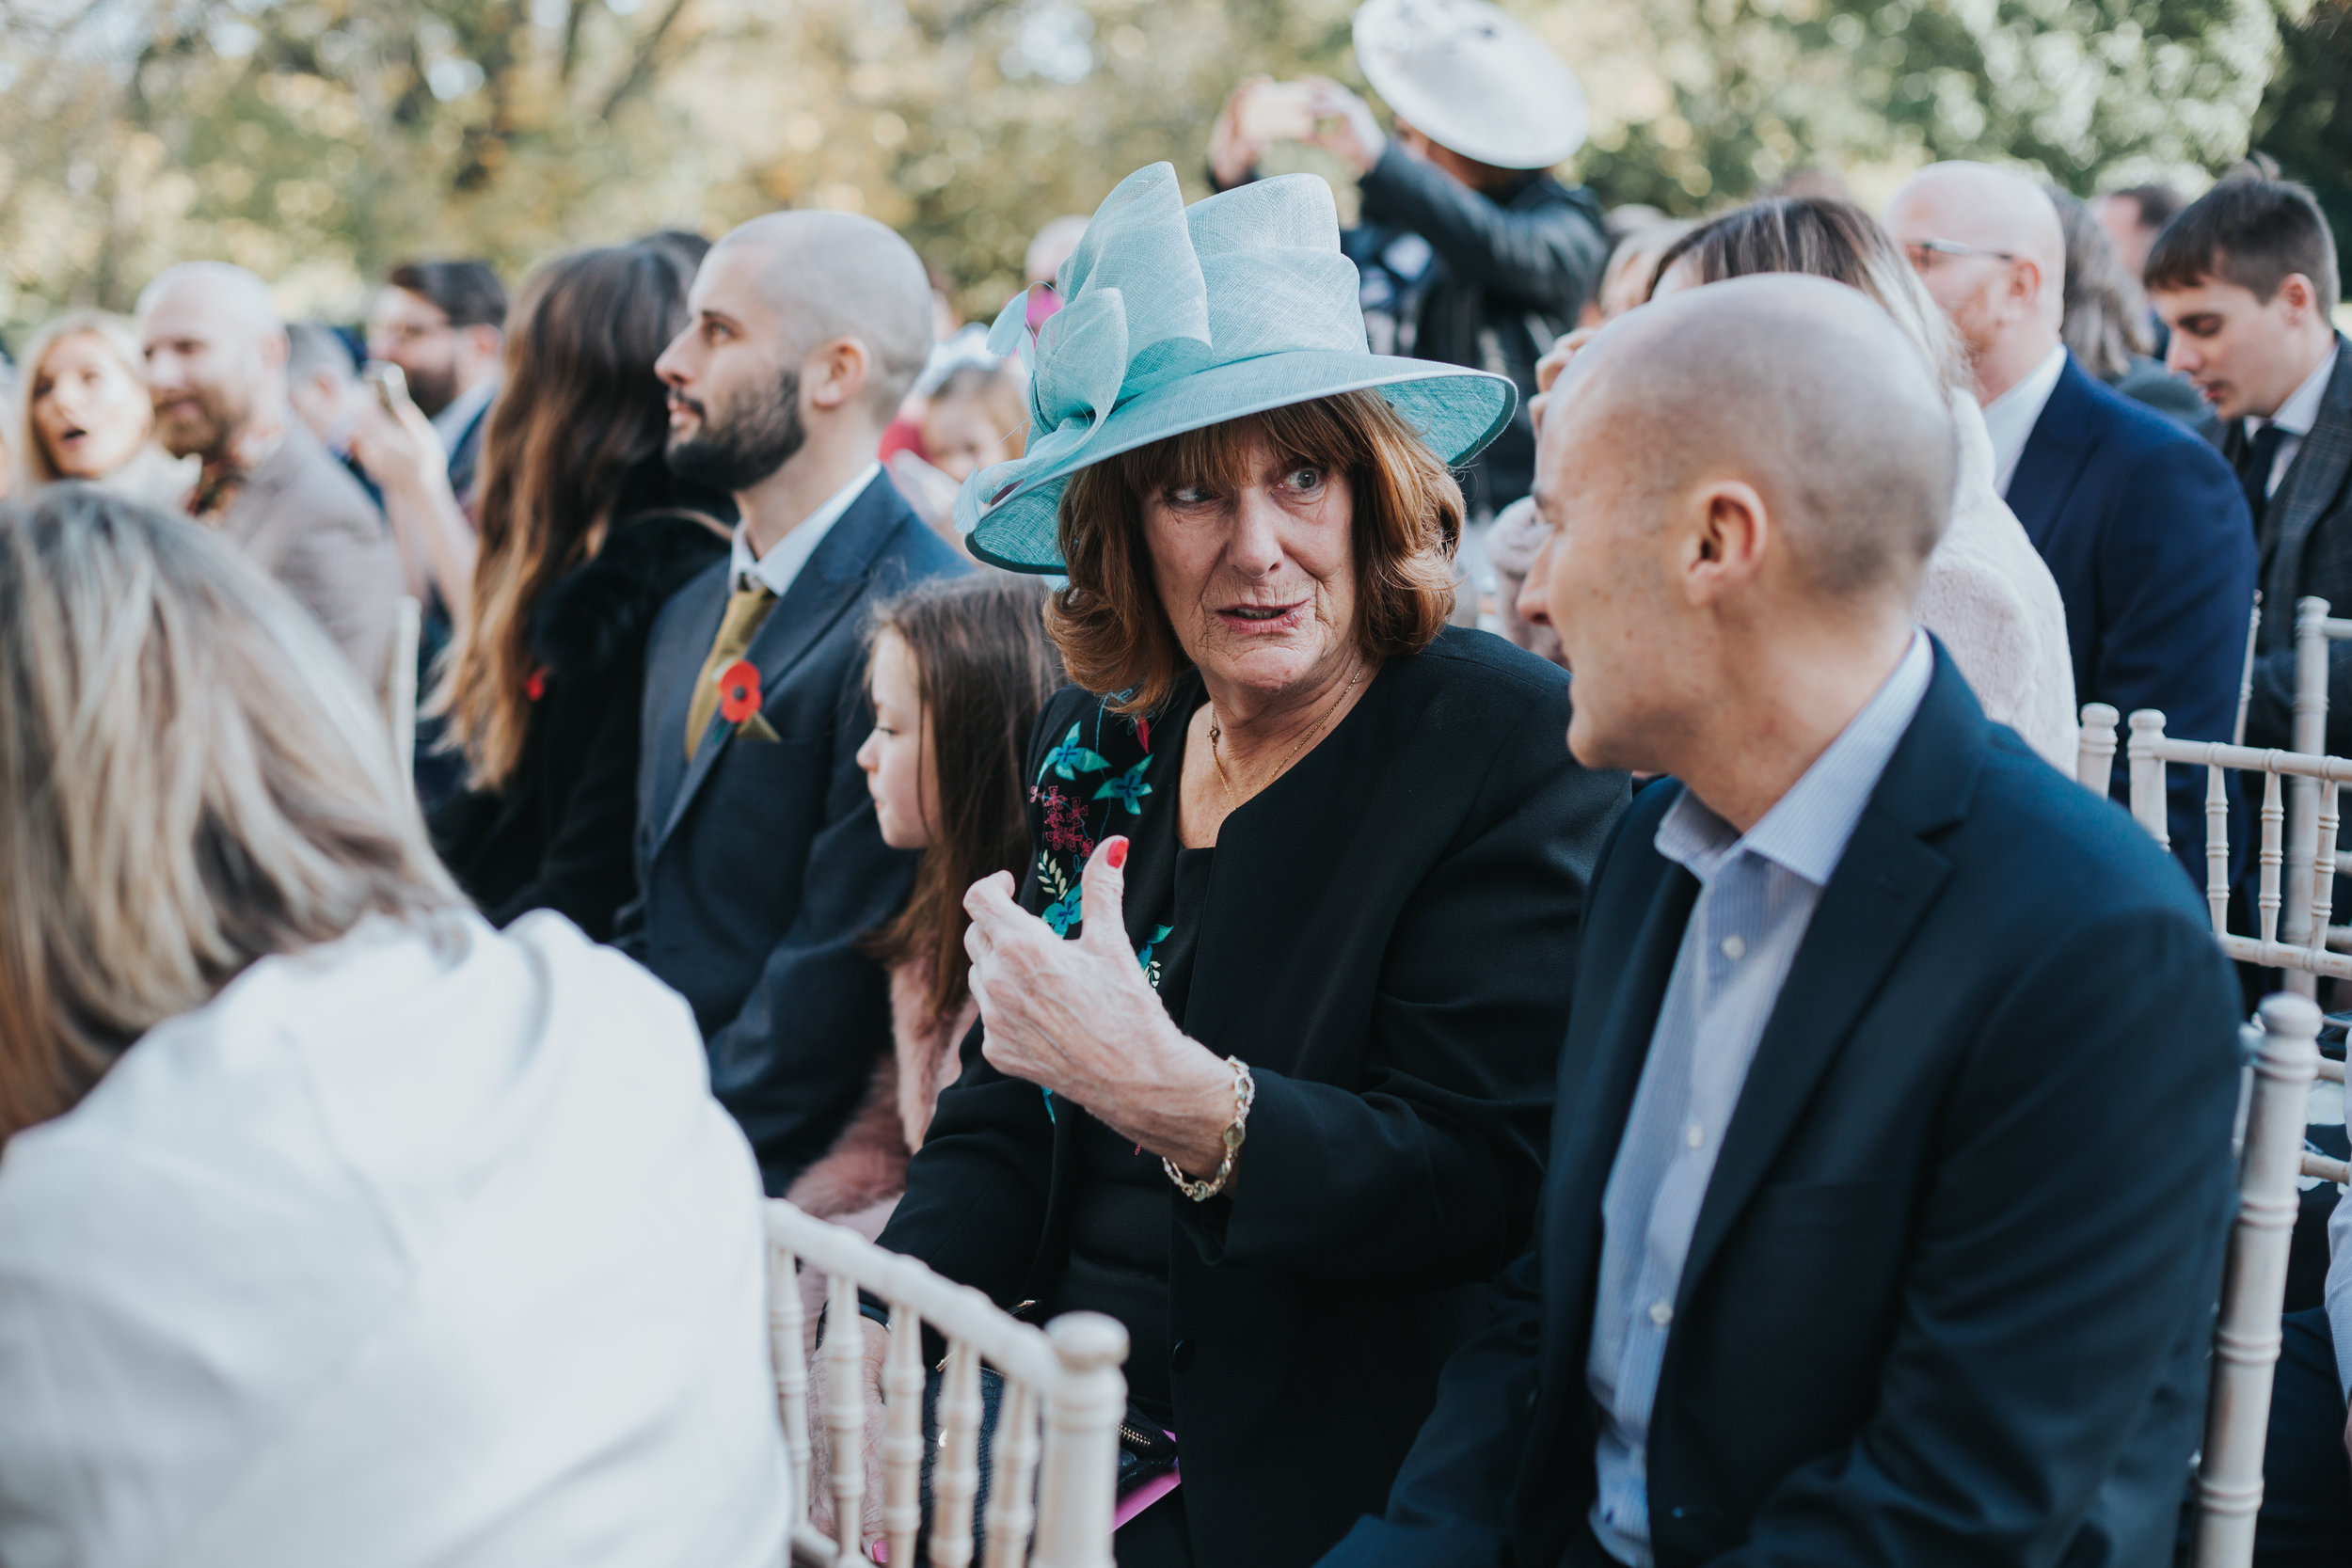 Wedding guests in blue hat chats with her friend.